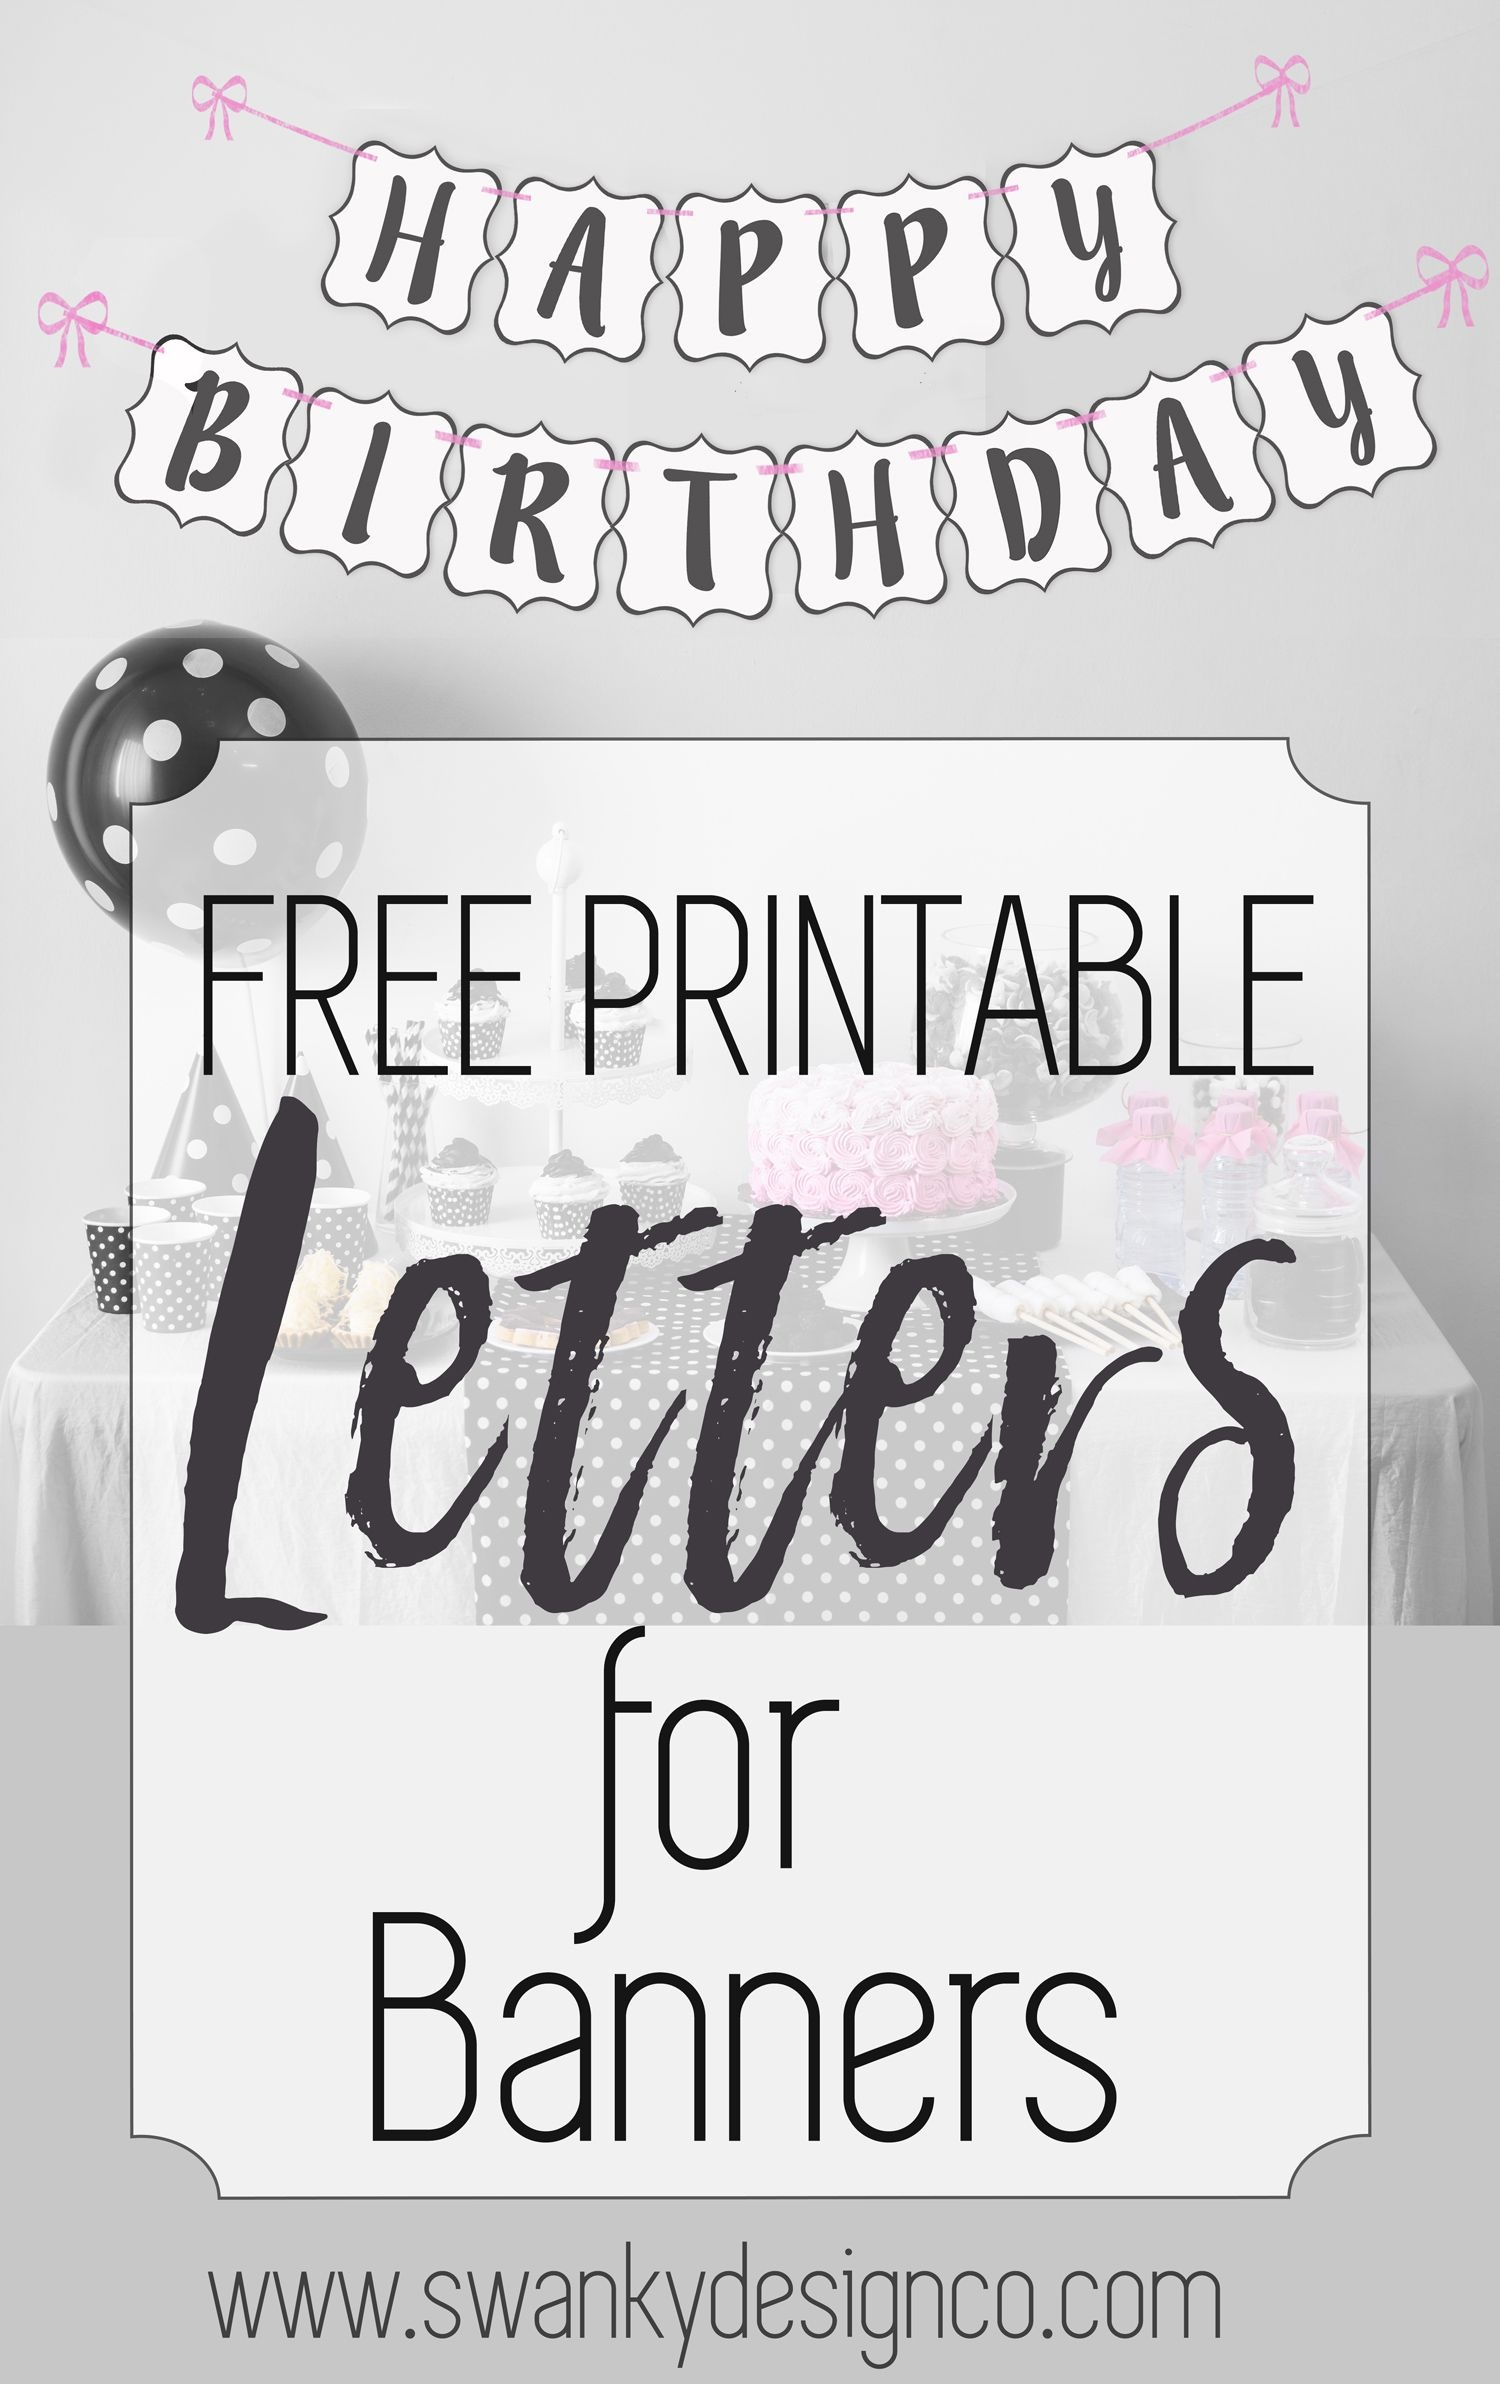 Free Printable Black And White Banner Letters | Printables - Free Happy Birthday Printable Letters